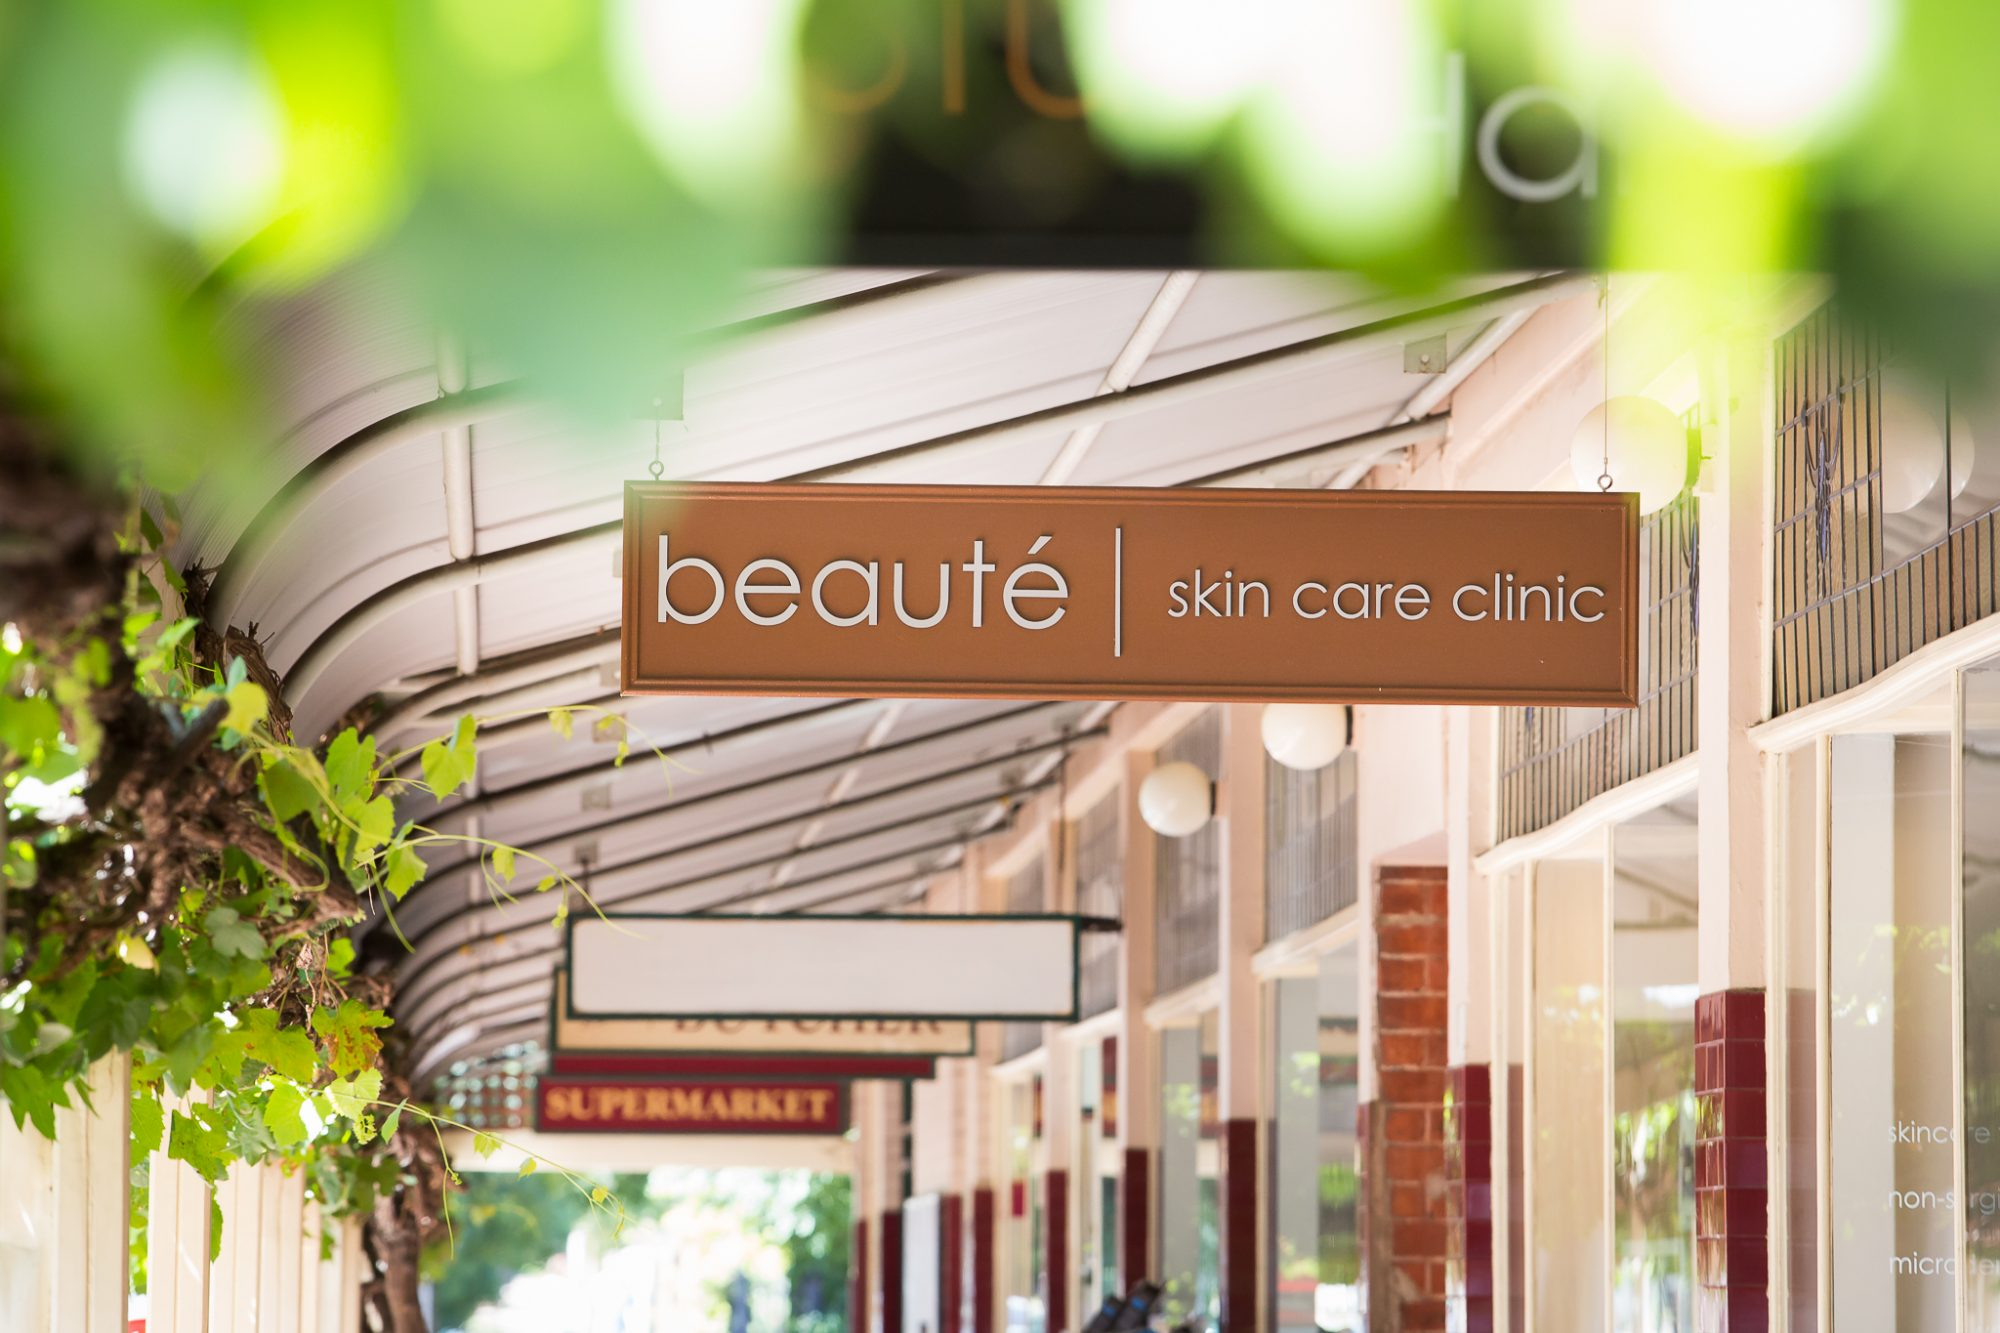 Beaute Skin Care Clinic